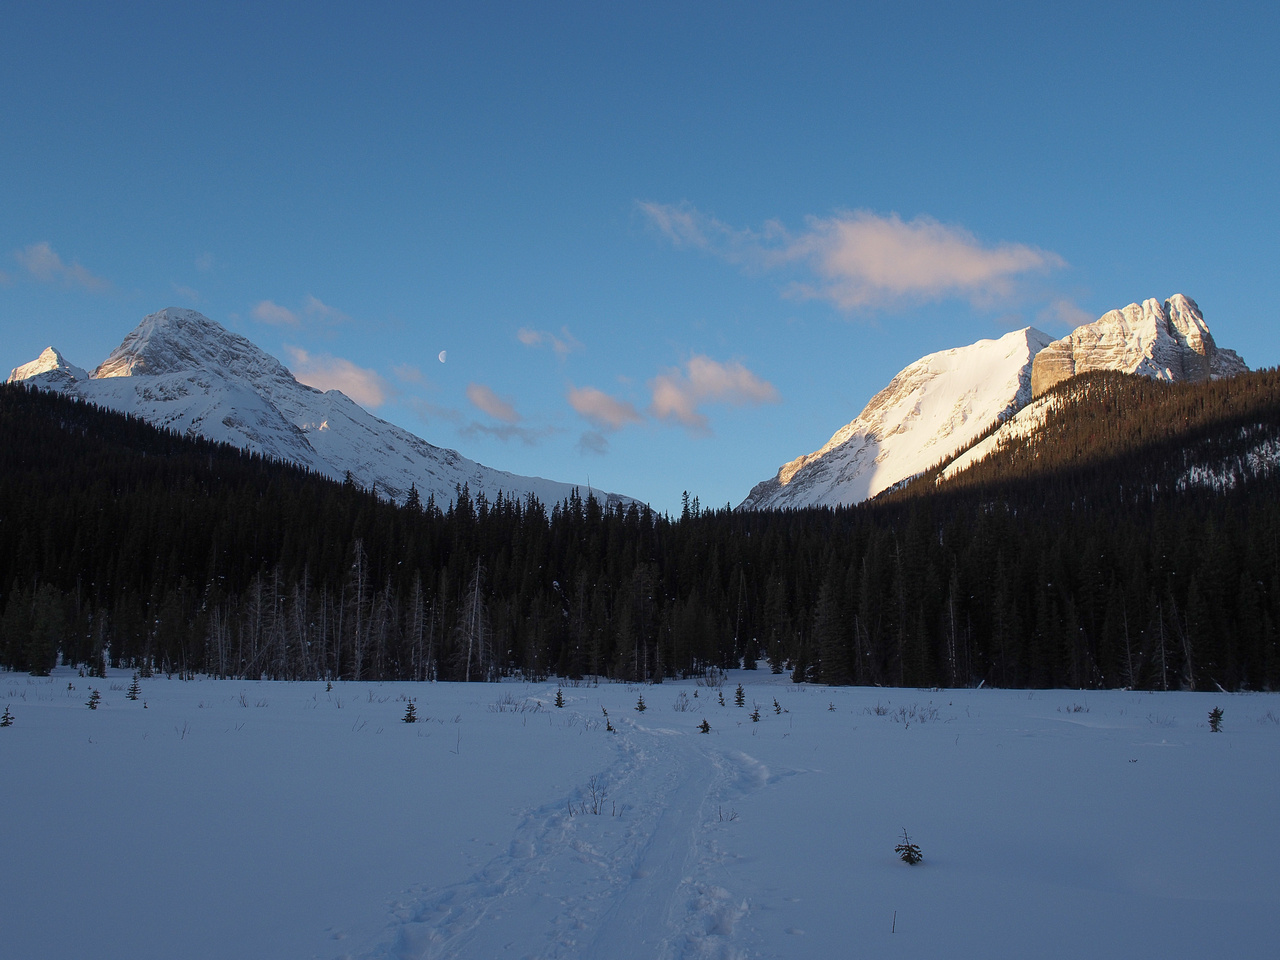 Starting our day from the Spray Lakes road skinning up Commonwealth Creek.